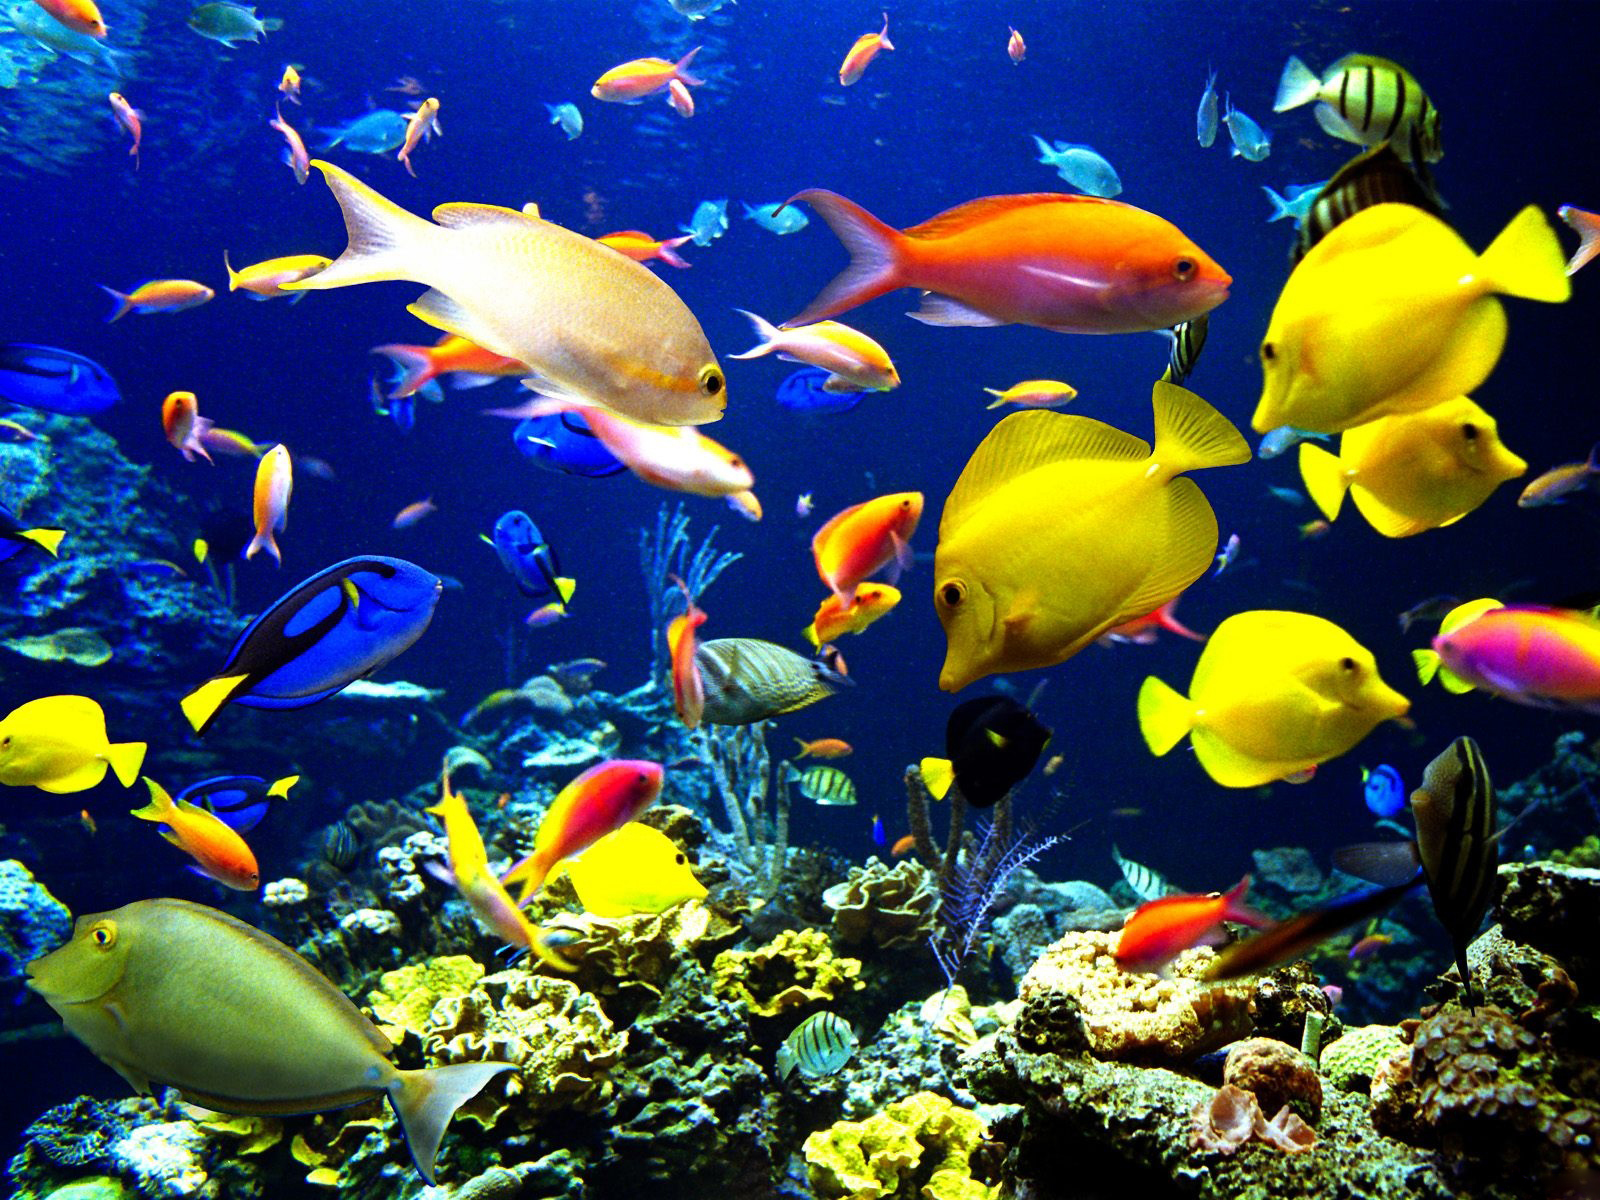 Fish Beautiful and Colourful Wallpaper